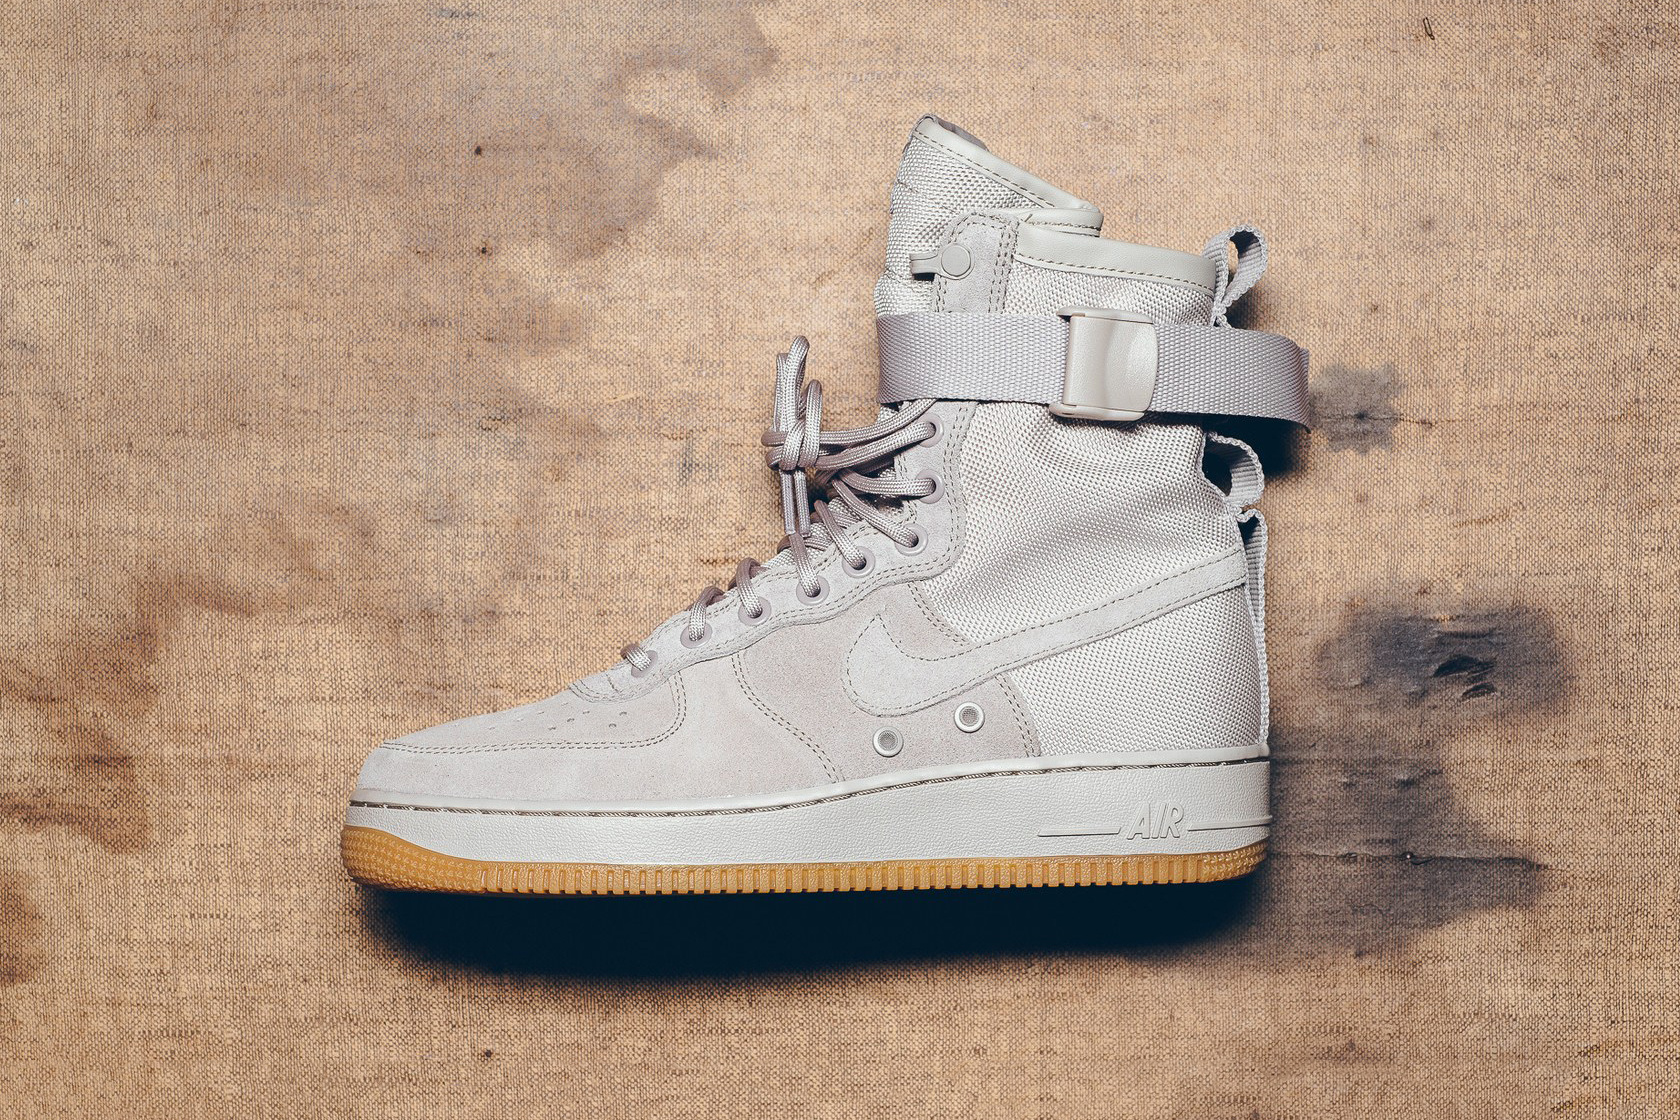 separation shoes e85c4 2b71c 近赏Nike Special Field Air Force 1 String